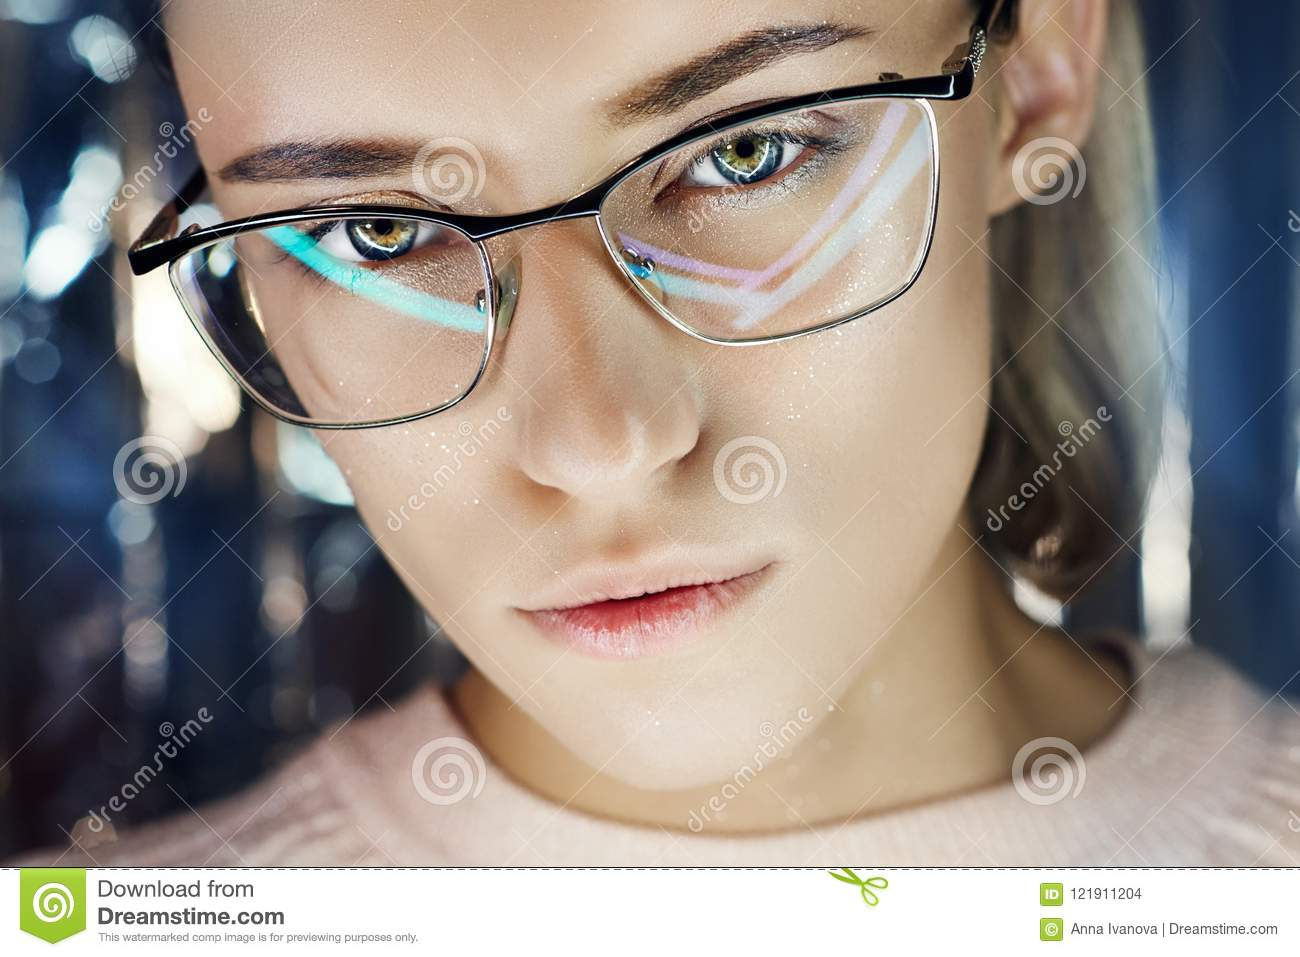 Portrait of a woman in neon colored reflection glasses in the background. Good vision, perfect makeup on girl face. Art portrait